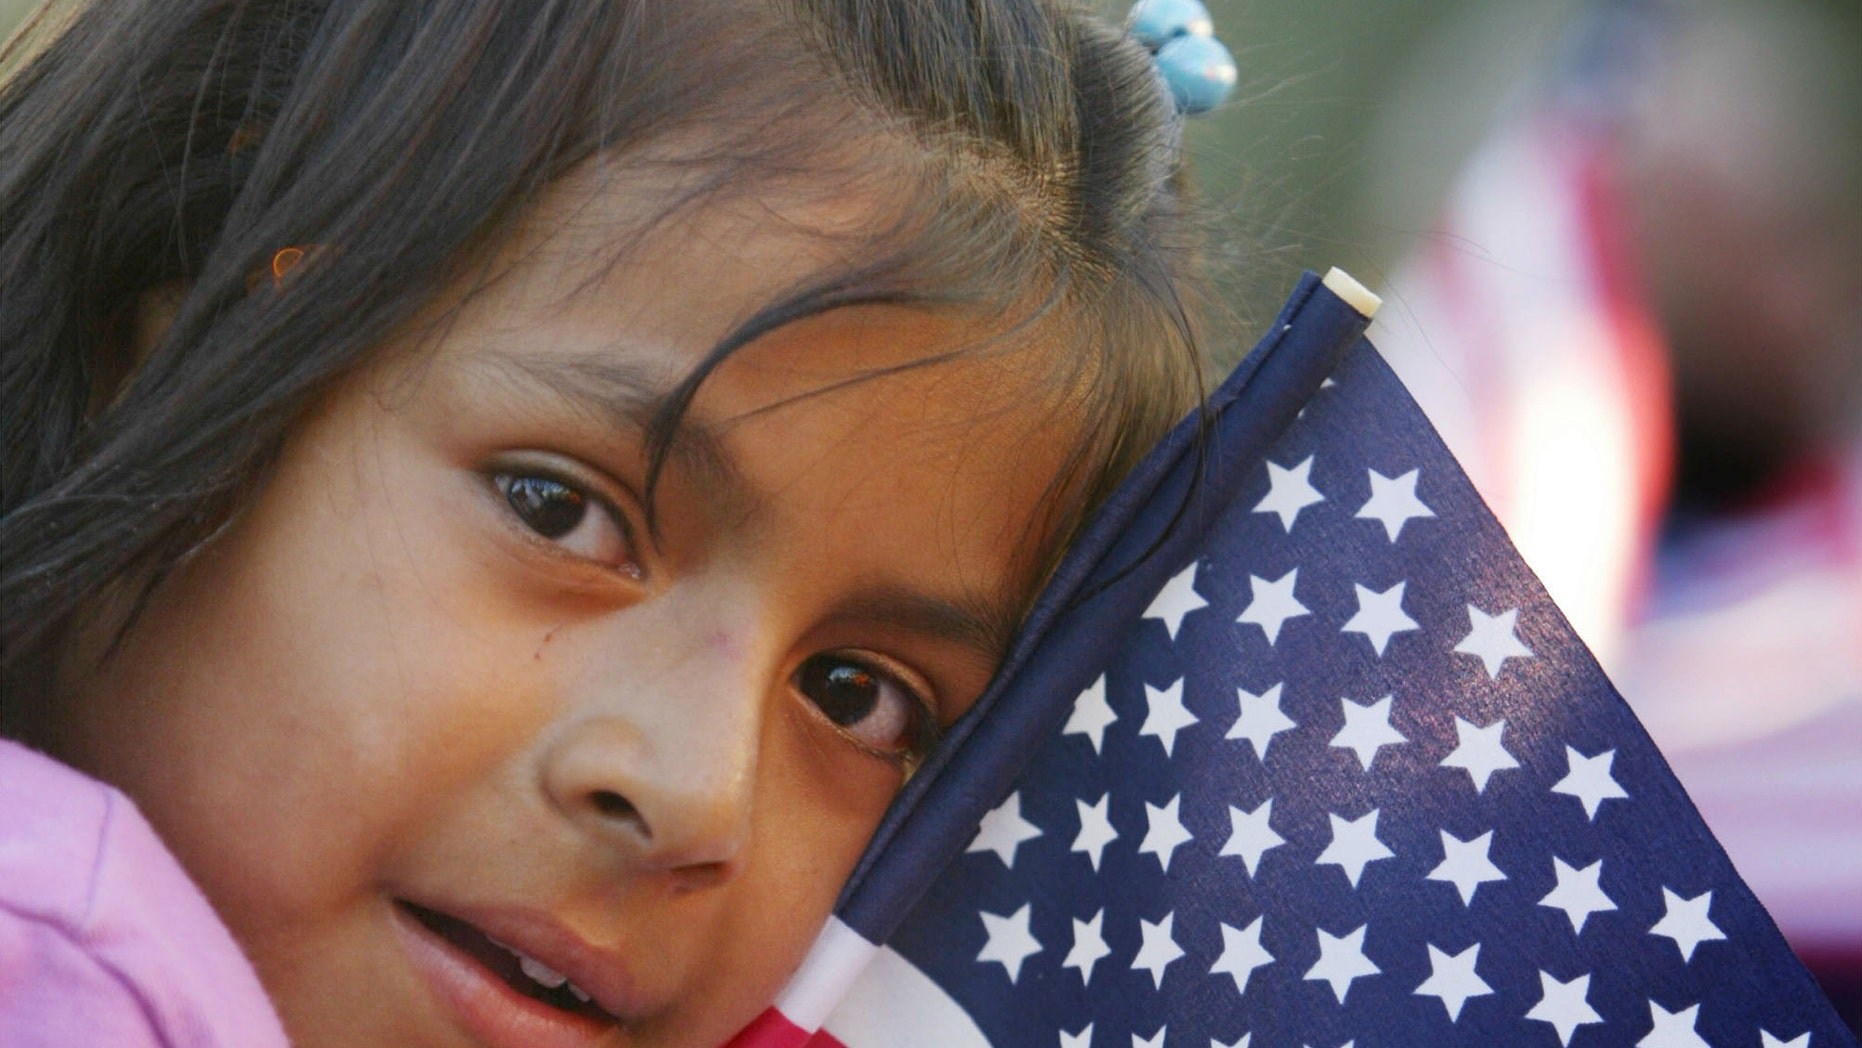 LOS ANGELES - SEPTEMBER 5: A Latina girl clutches an American flag while  waiting to